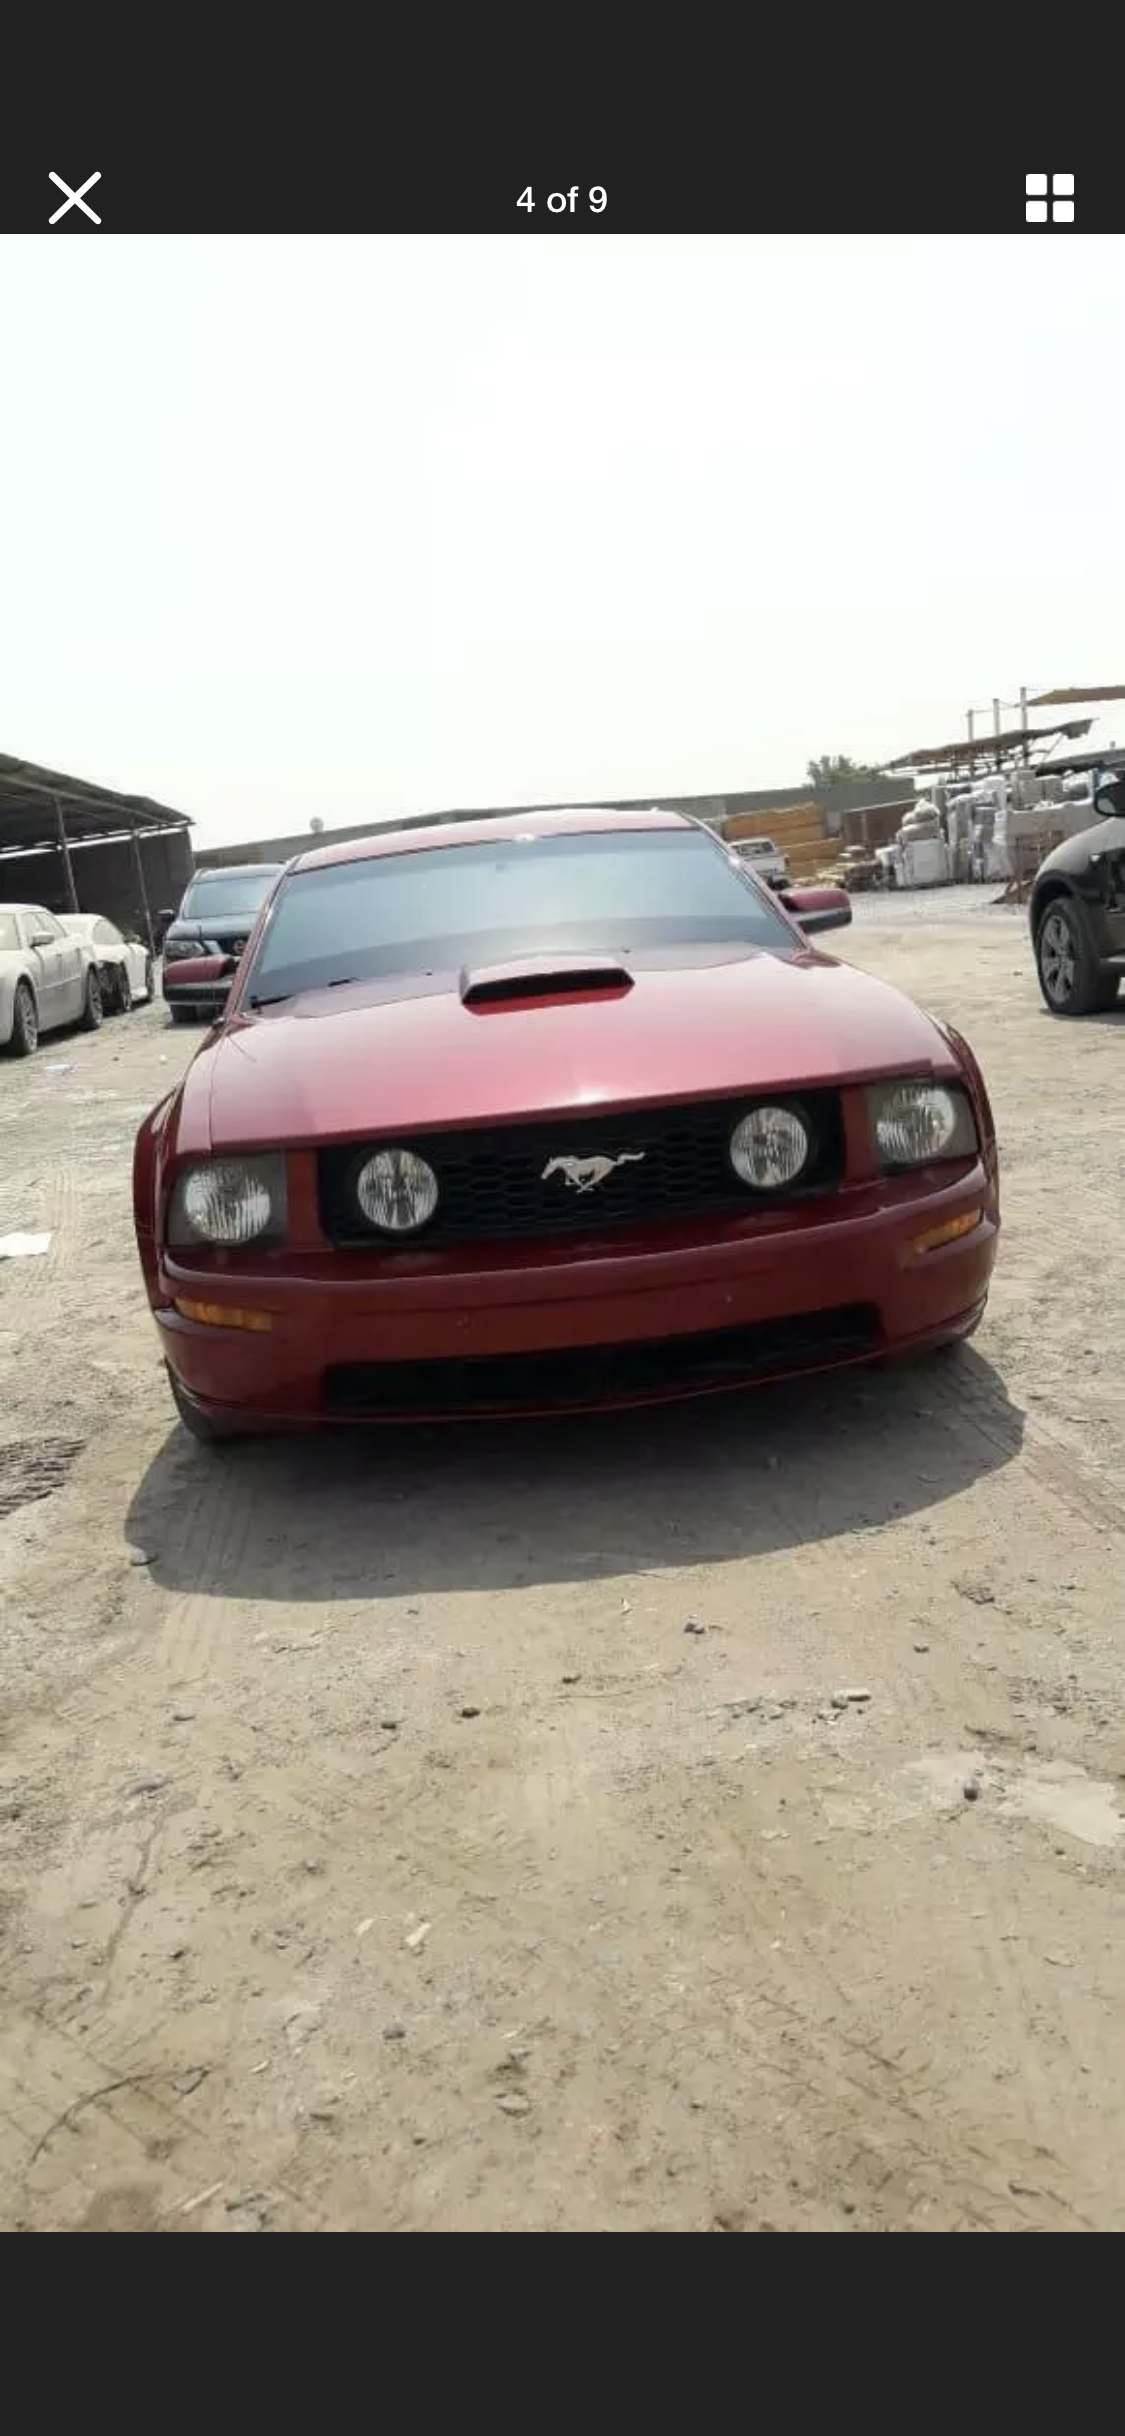 2009 FORD MUSTANG 4.6 V8 GT RARE MANUAL LHD FRESH IMPORT For Sale (picture 4 of 6)